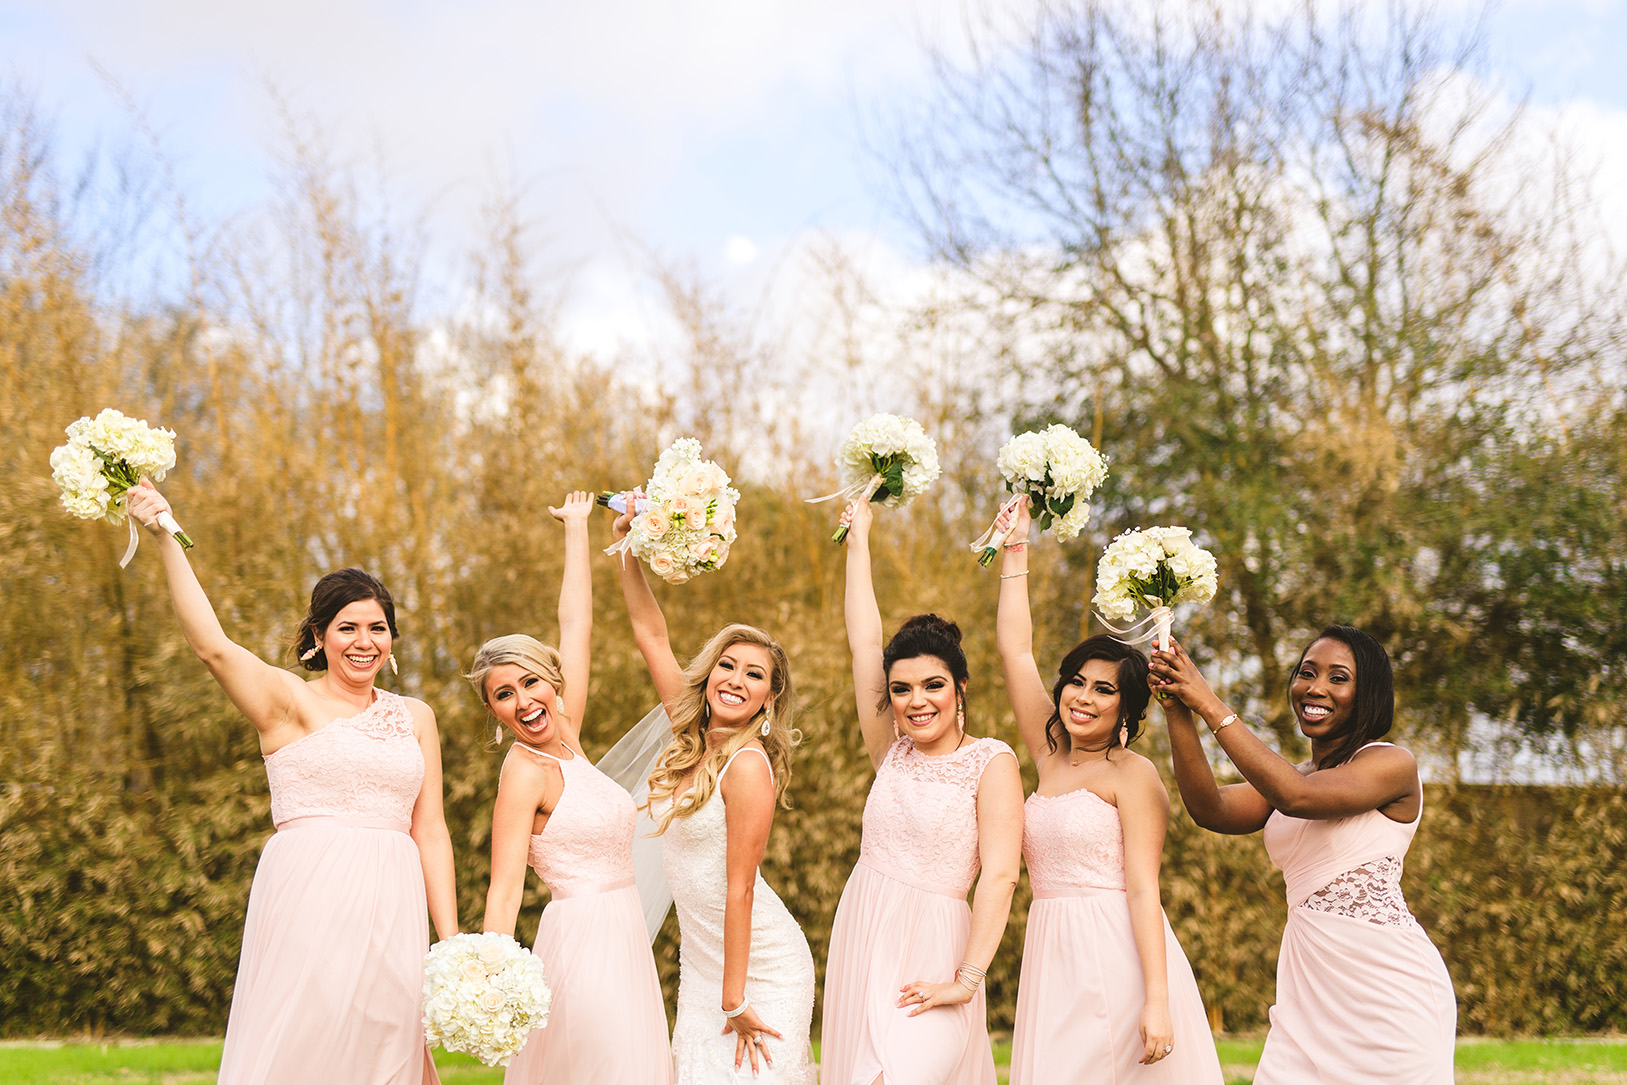 houston wedding, bridal party, bridesmaids, pink dresses